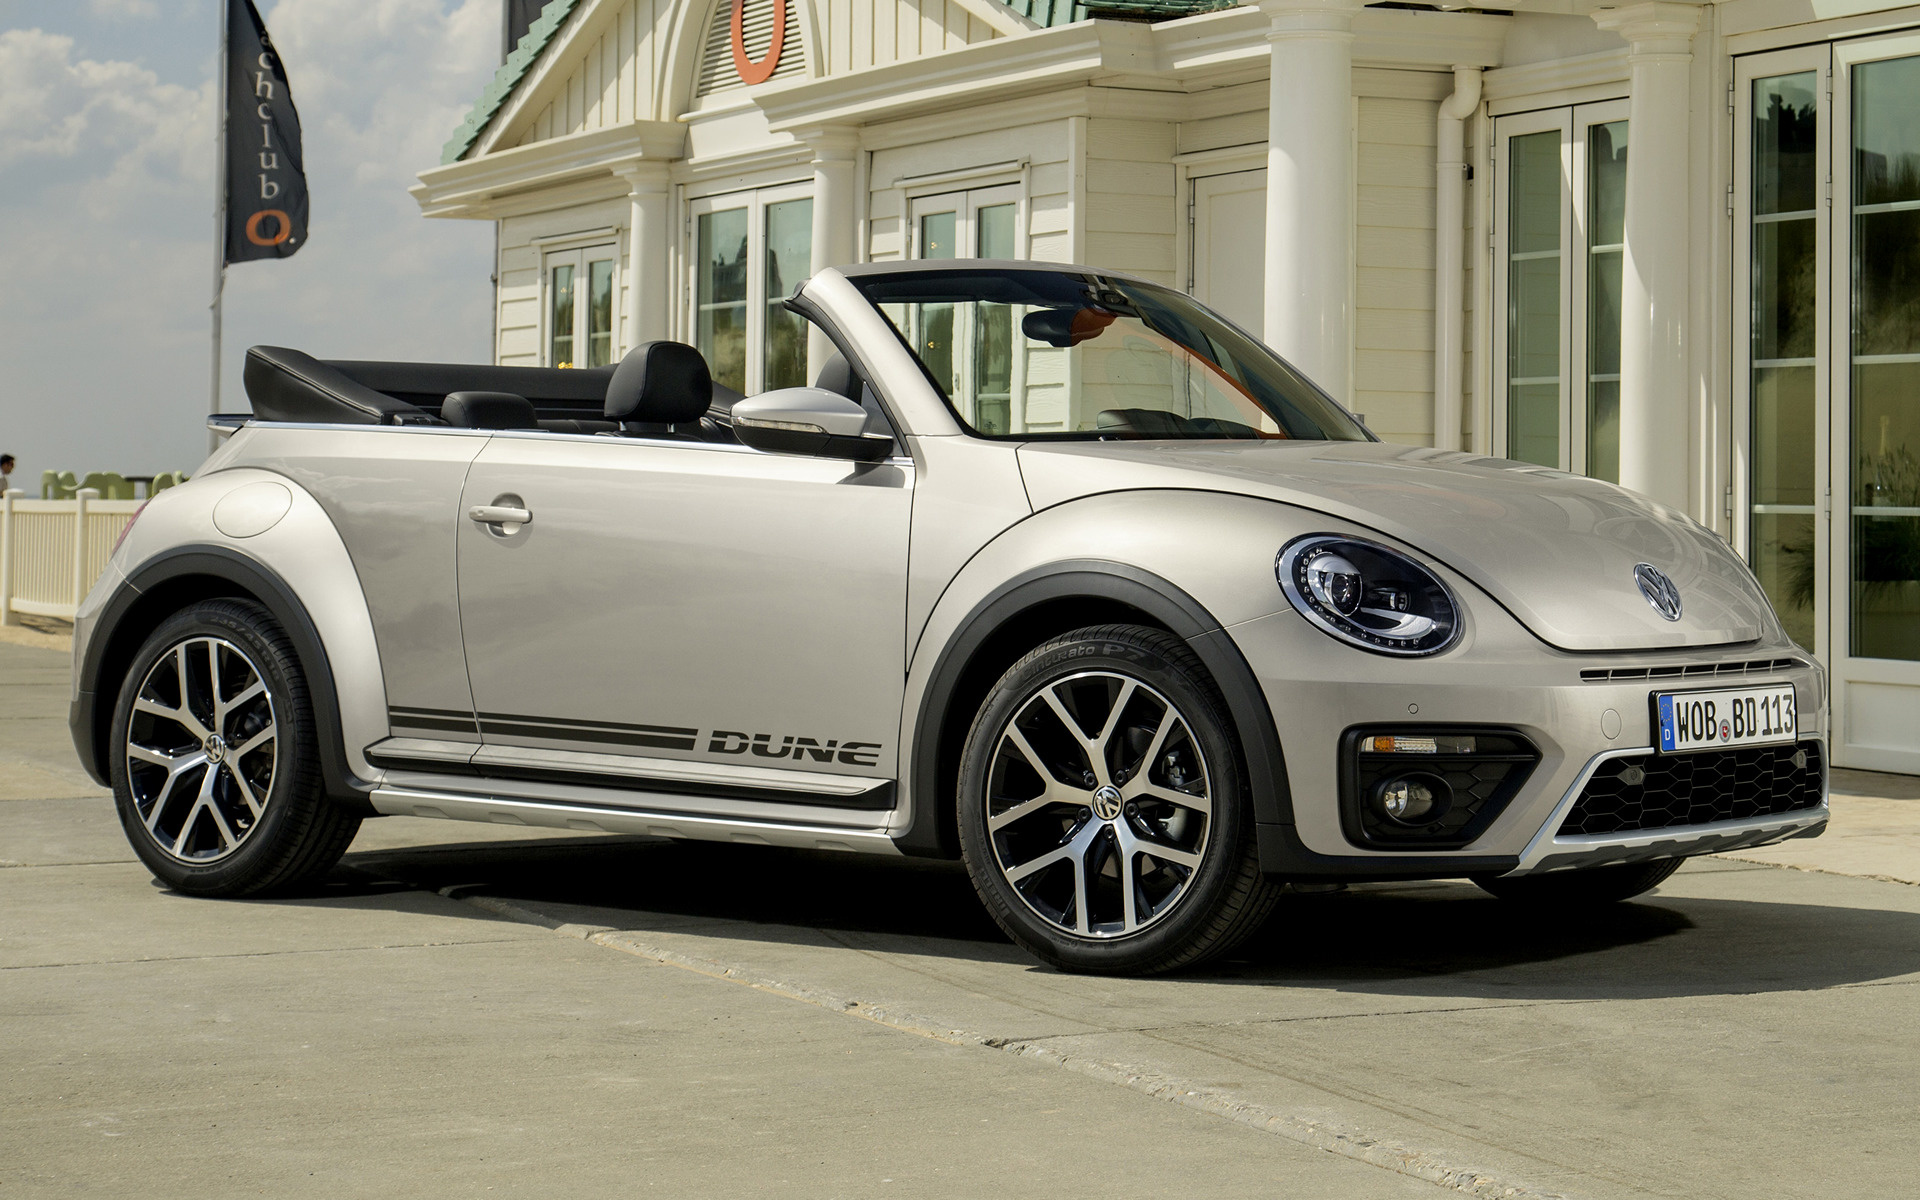 2016 Volkswagen Beetle Dune Cabriolet - Wallpapers and HD Images | Car Pixel